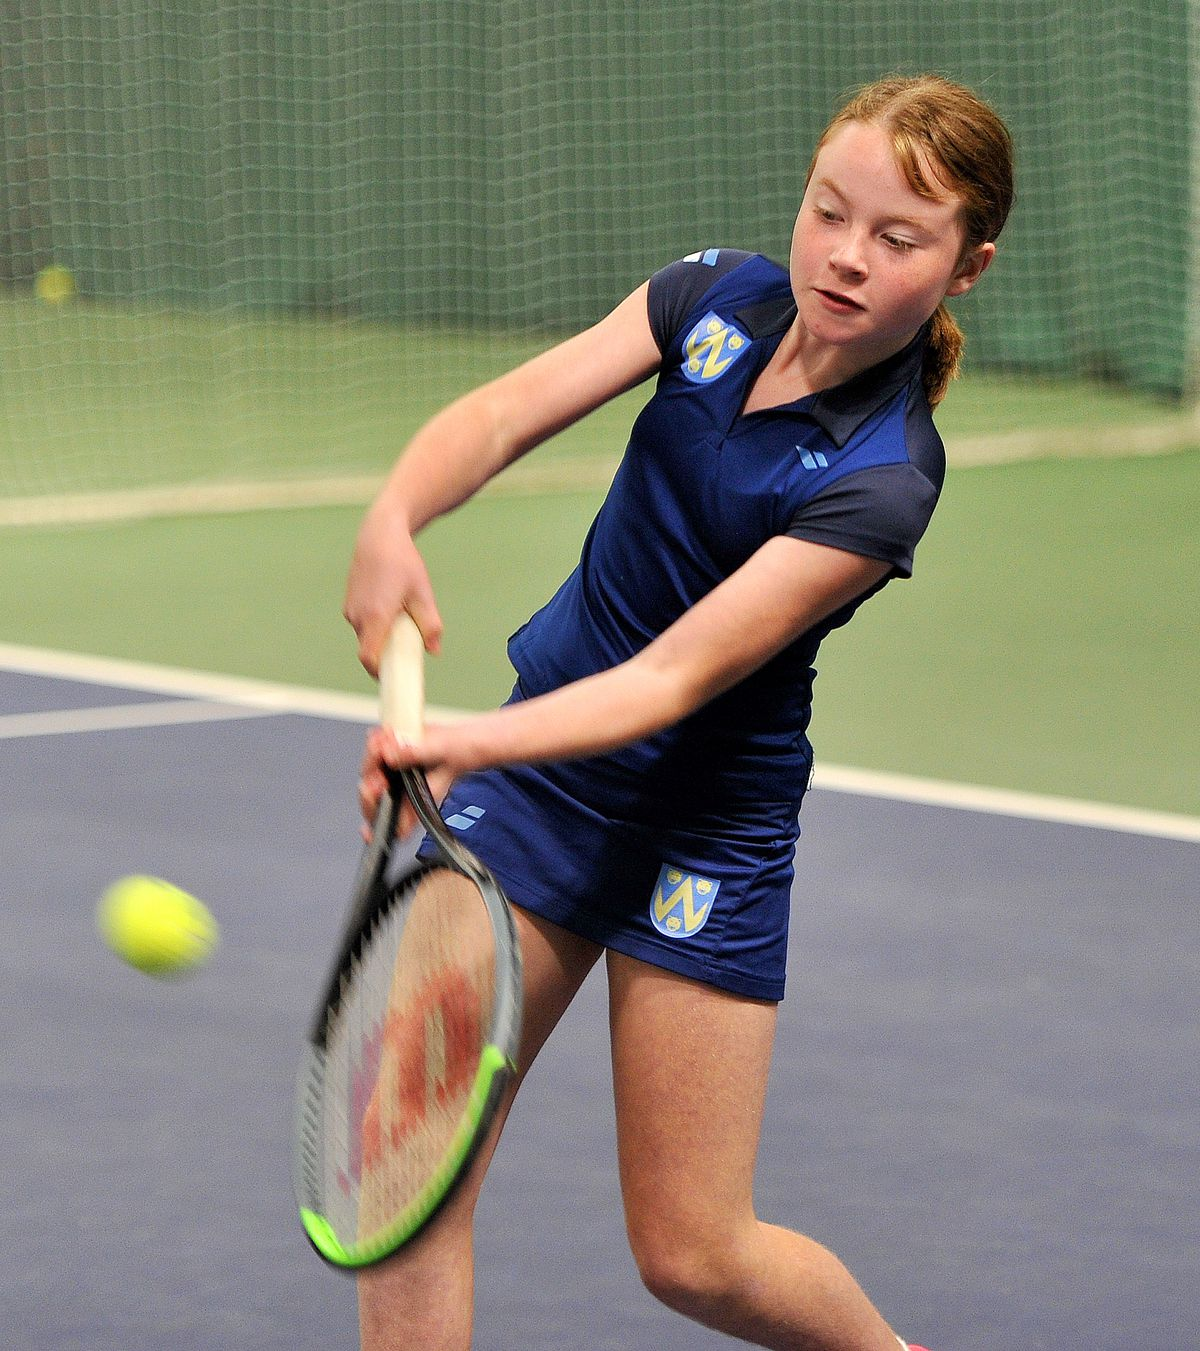 Ten-year-old Maddie Crabb in action at The Shrewsbury Club